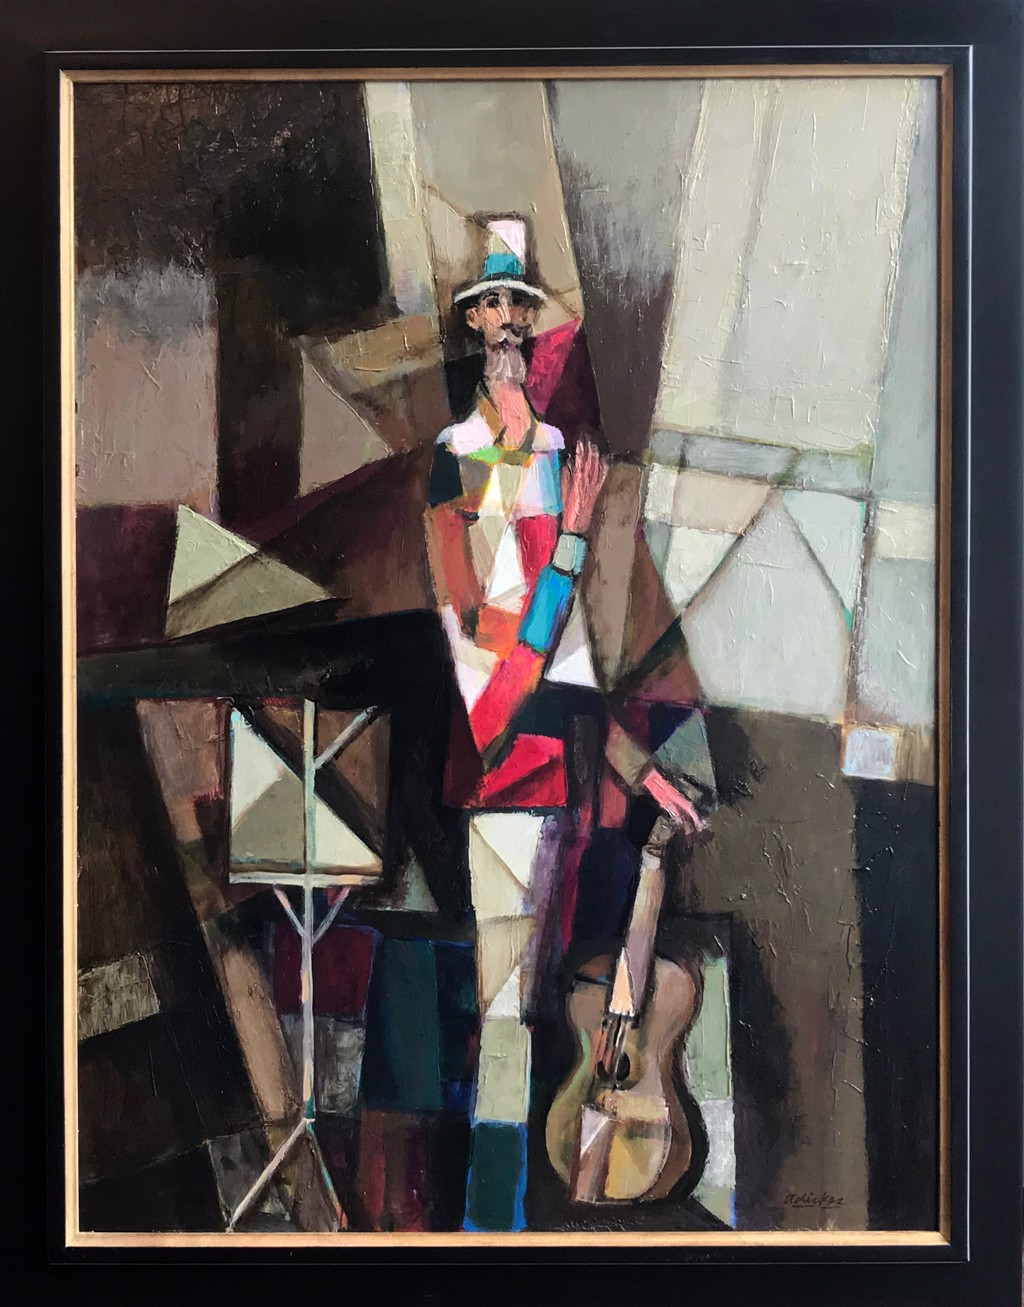 Cubism Man With Guitar  by David Adickes